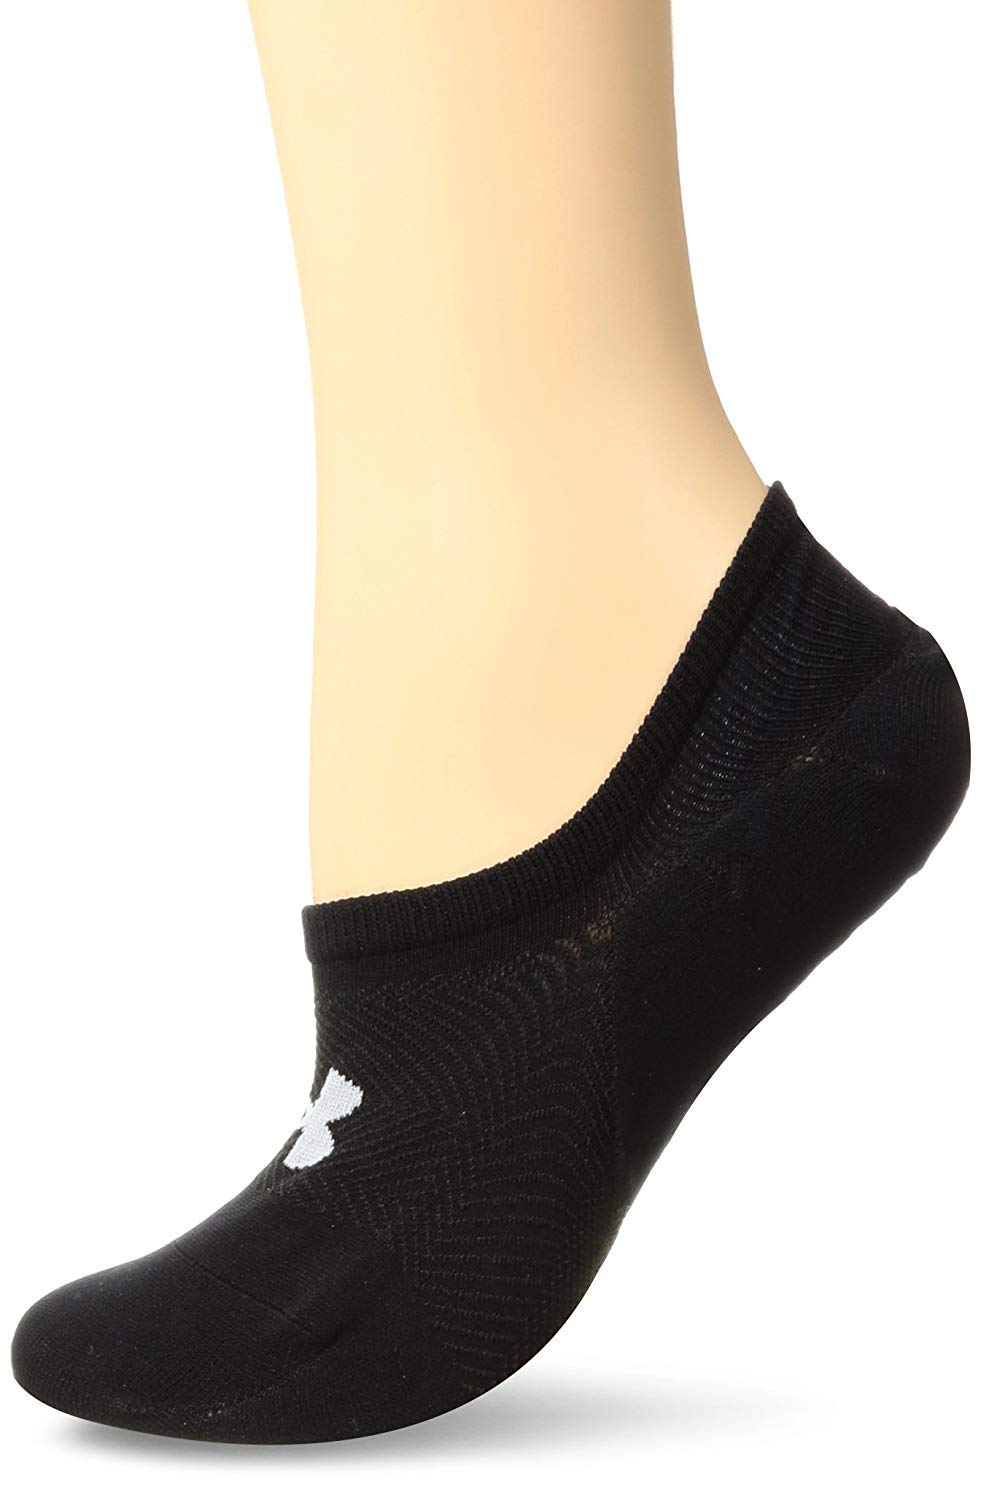 Under Armour Women's Essential Ultra Low Socks (3 Pack) by Under Armour